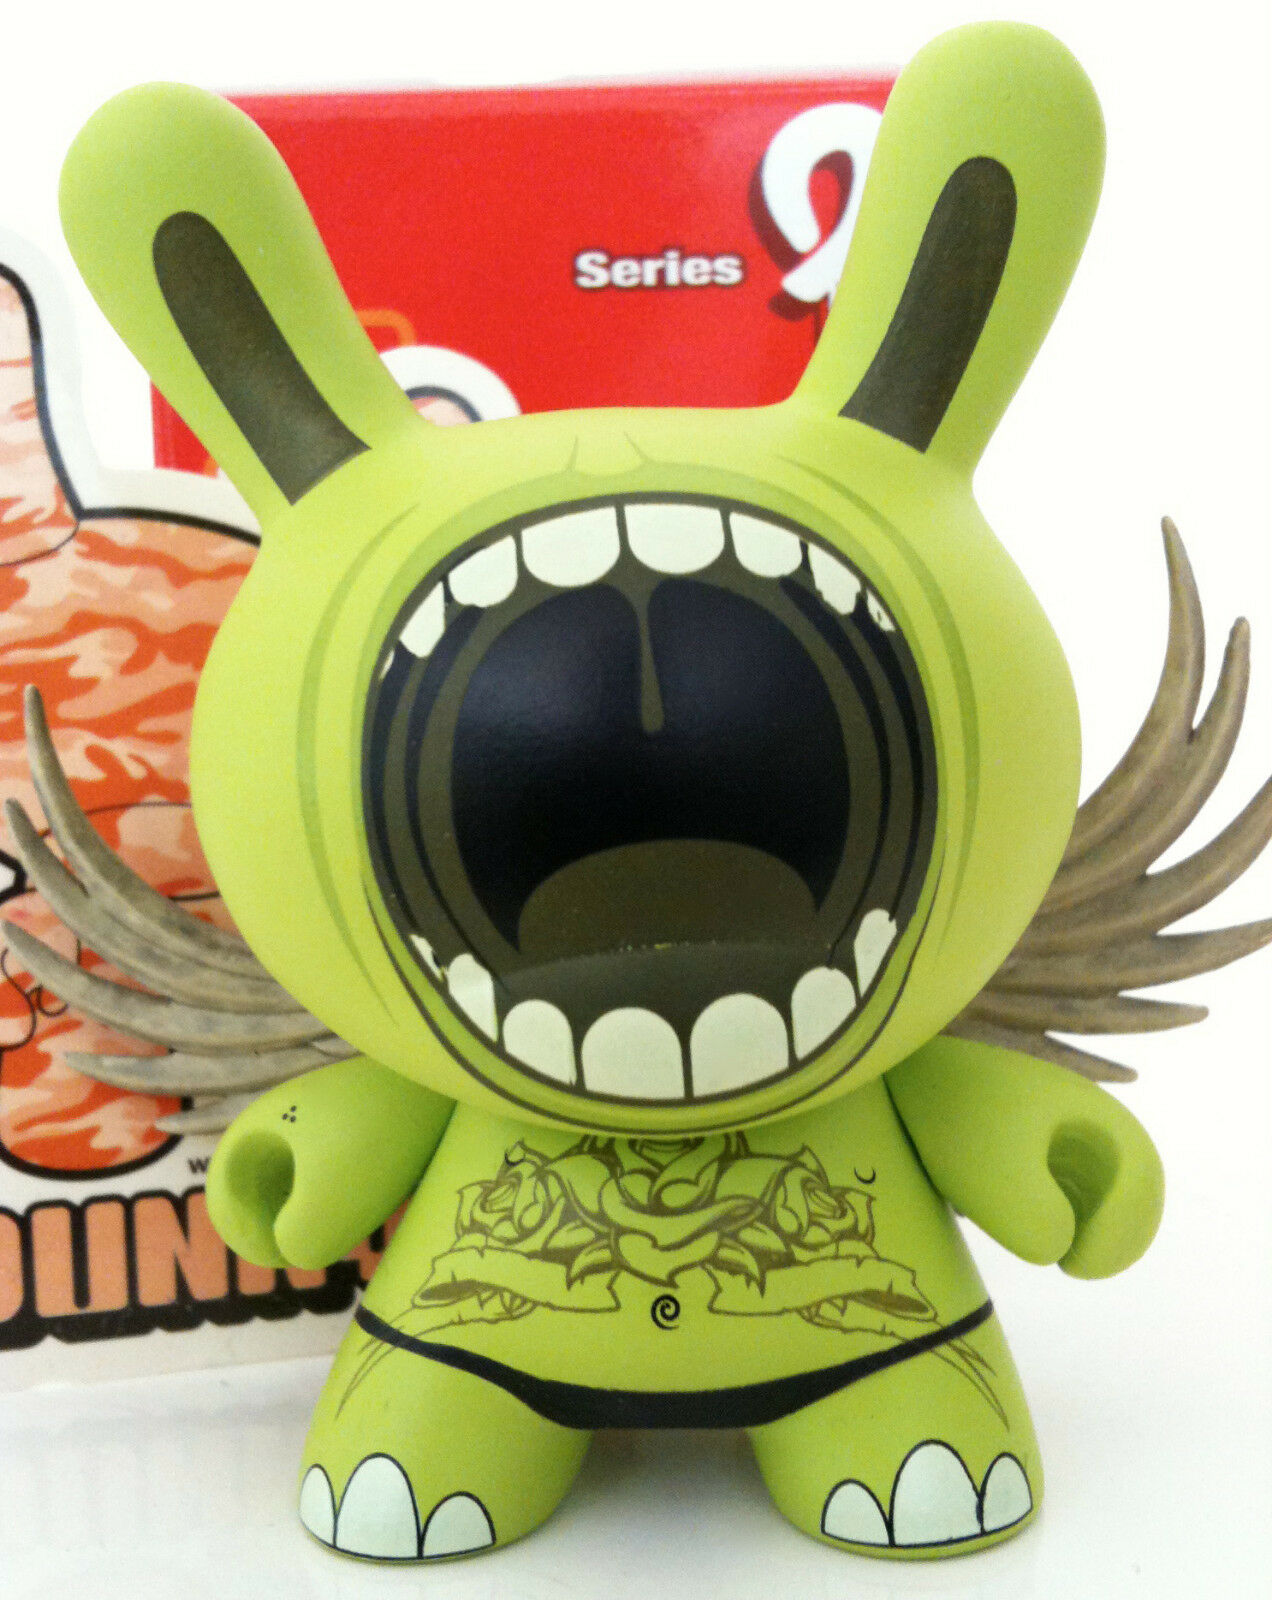 DUNNY 3  SERIES 2 DEPH BIG MOUTH WINGS CHASE 1 48 KIDROBOT 2006 TOY FIGURE NEW